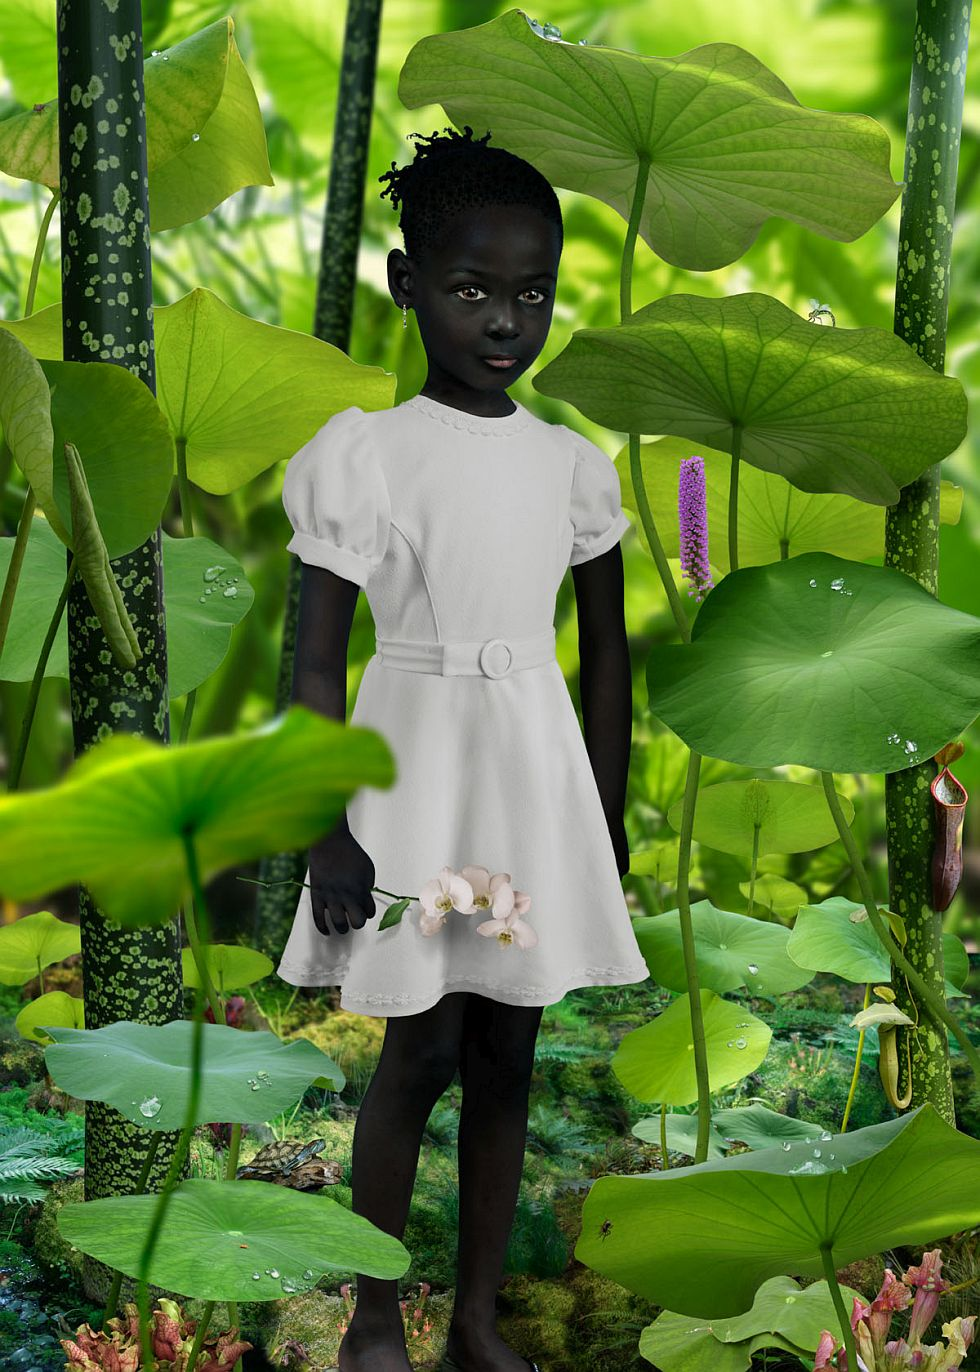 ruud-van-empel-beetleshuxley-in-london-02